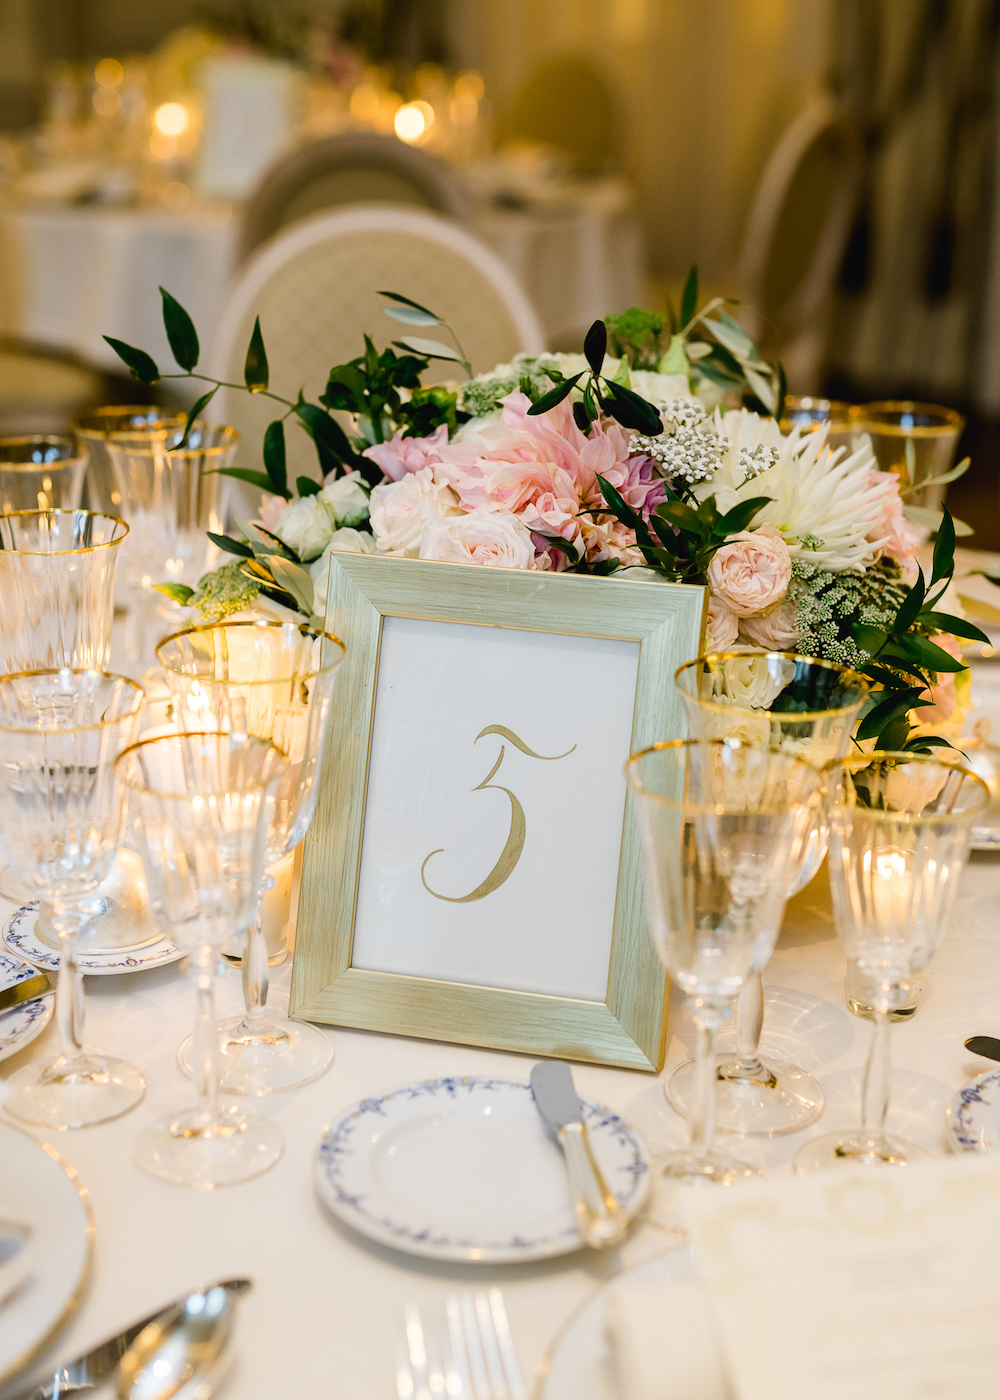 Wedding design by Fête in France for a Ritz Paris wedding